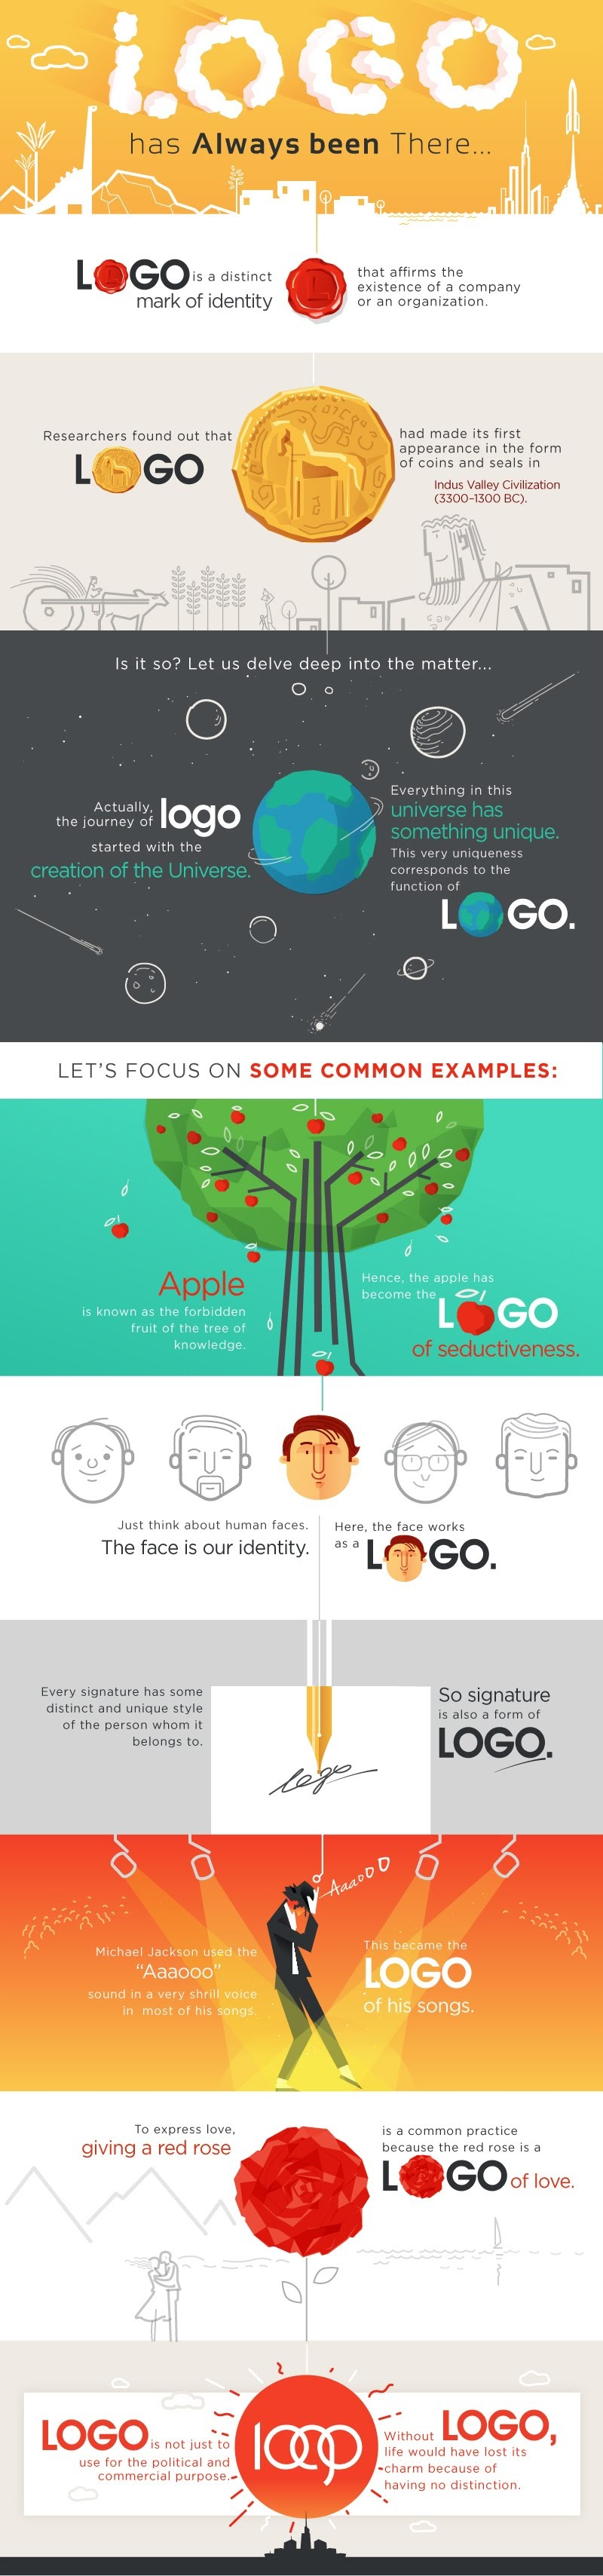 The Evolution of Logo - #infographic